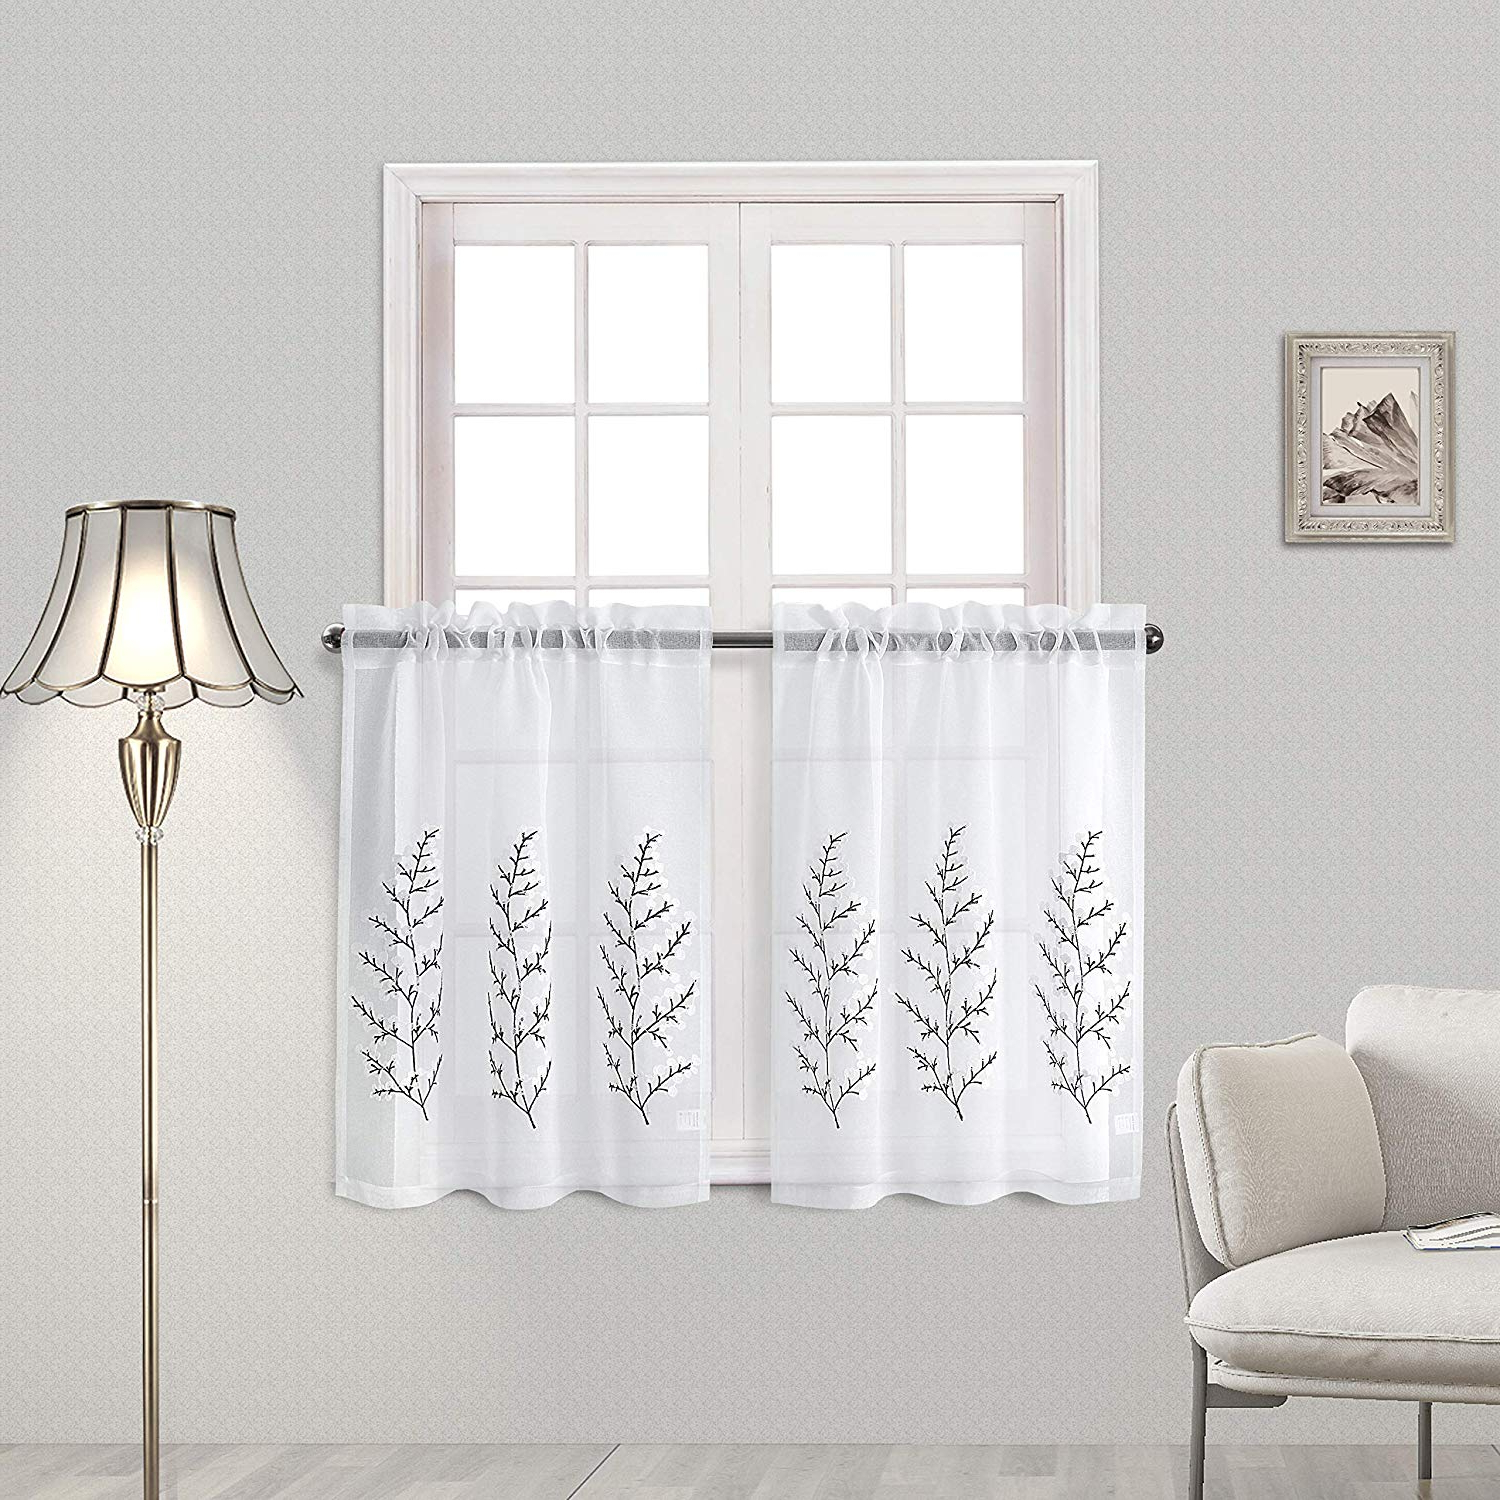 Linen Stripe Rod Pocket Sheer Kitchen Tier Sets In Famous Dwcn Tier Curtains Kitchen Cafe Floral Embroidered Sheer Window Curtain  Set, Faux Linen Rod Pocket Window Curtains, W 32 X L 36 Inch, 2 Panels (Gallery 11 of 20)